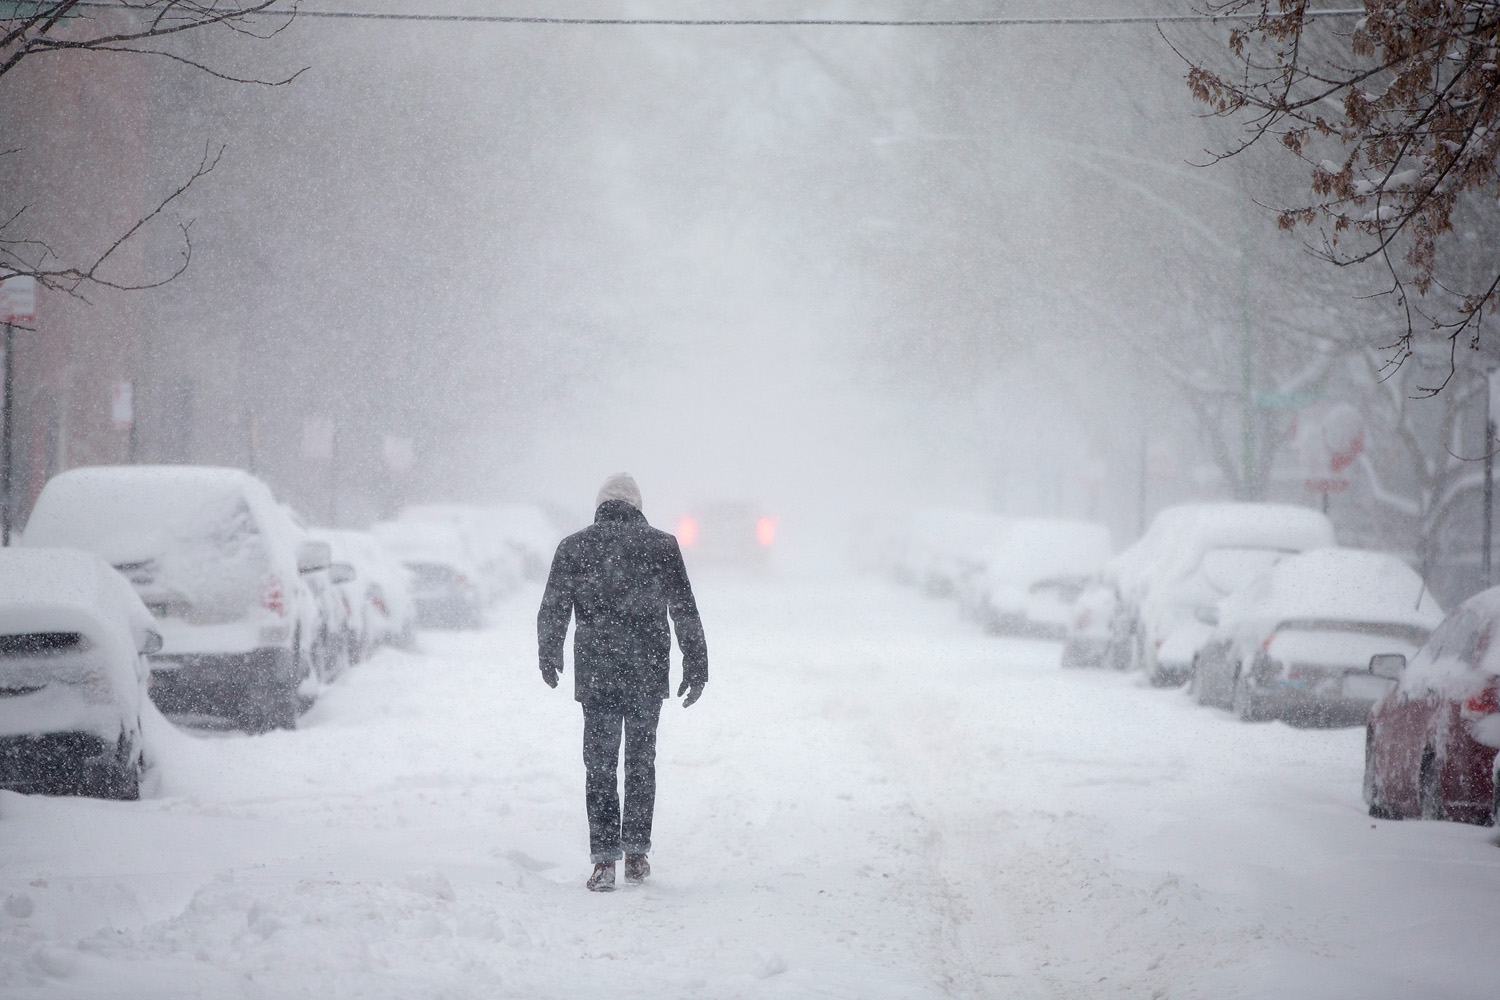 A man walks down a snow-covered street on Feb. 1, 2015 in Chicago, Illinois.